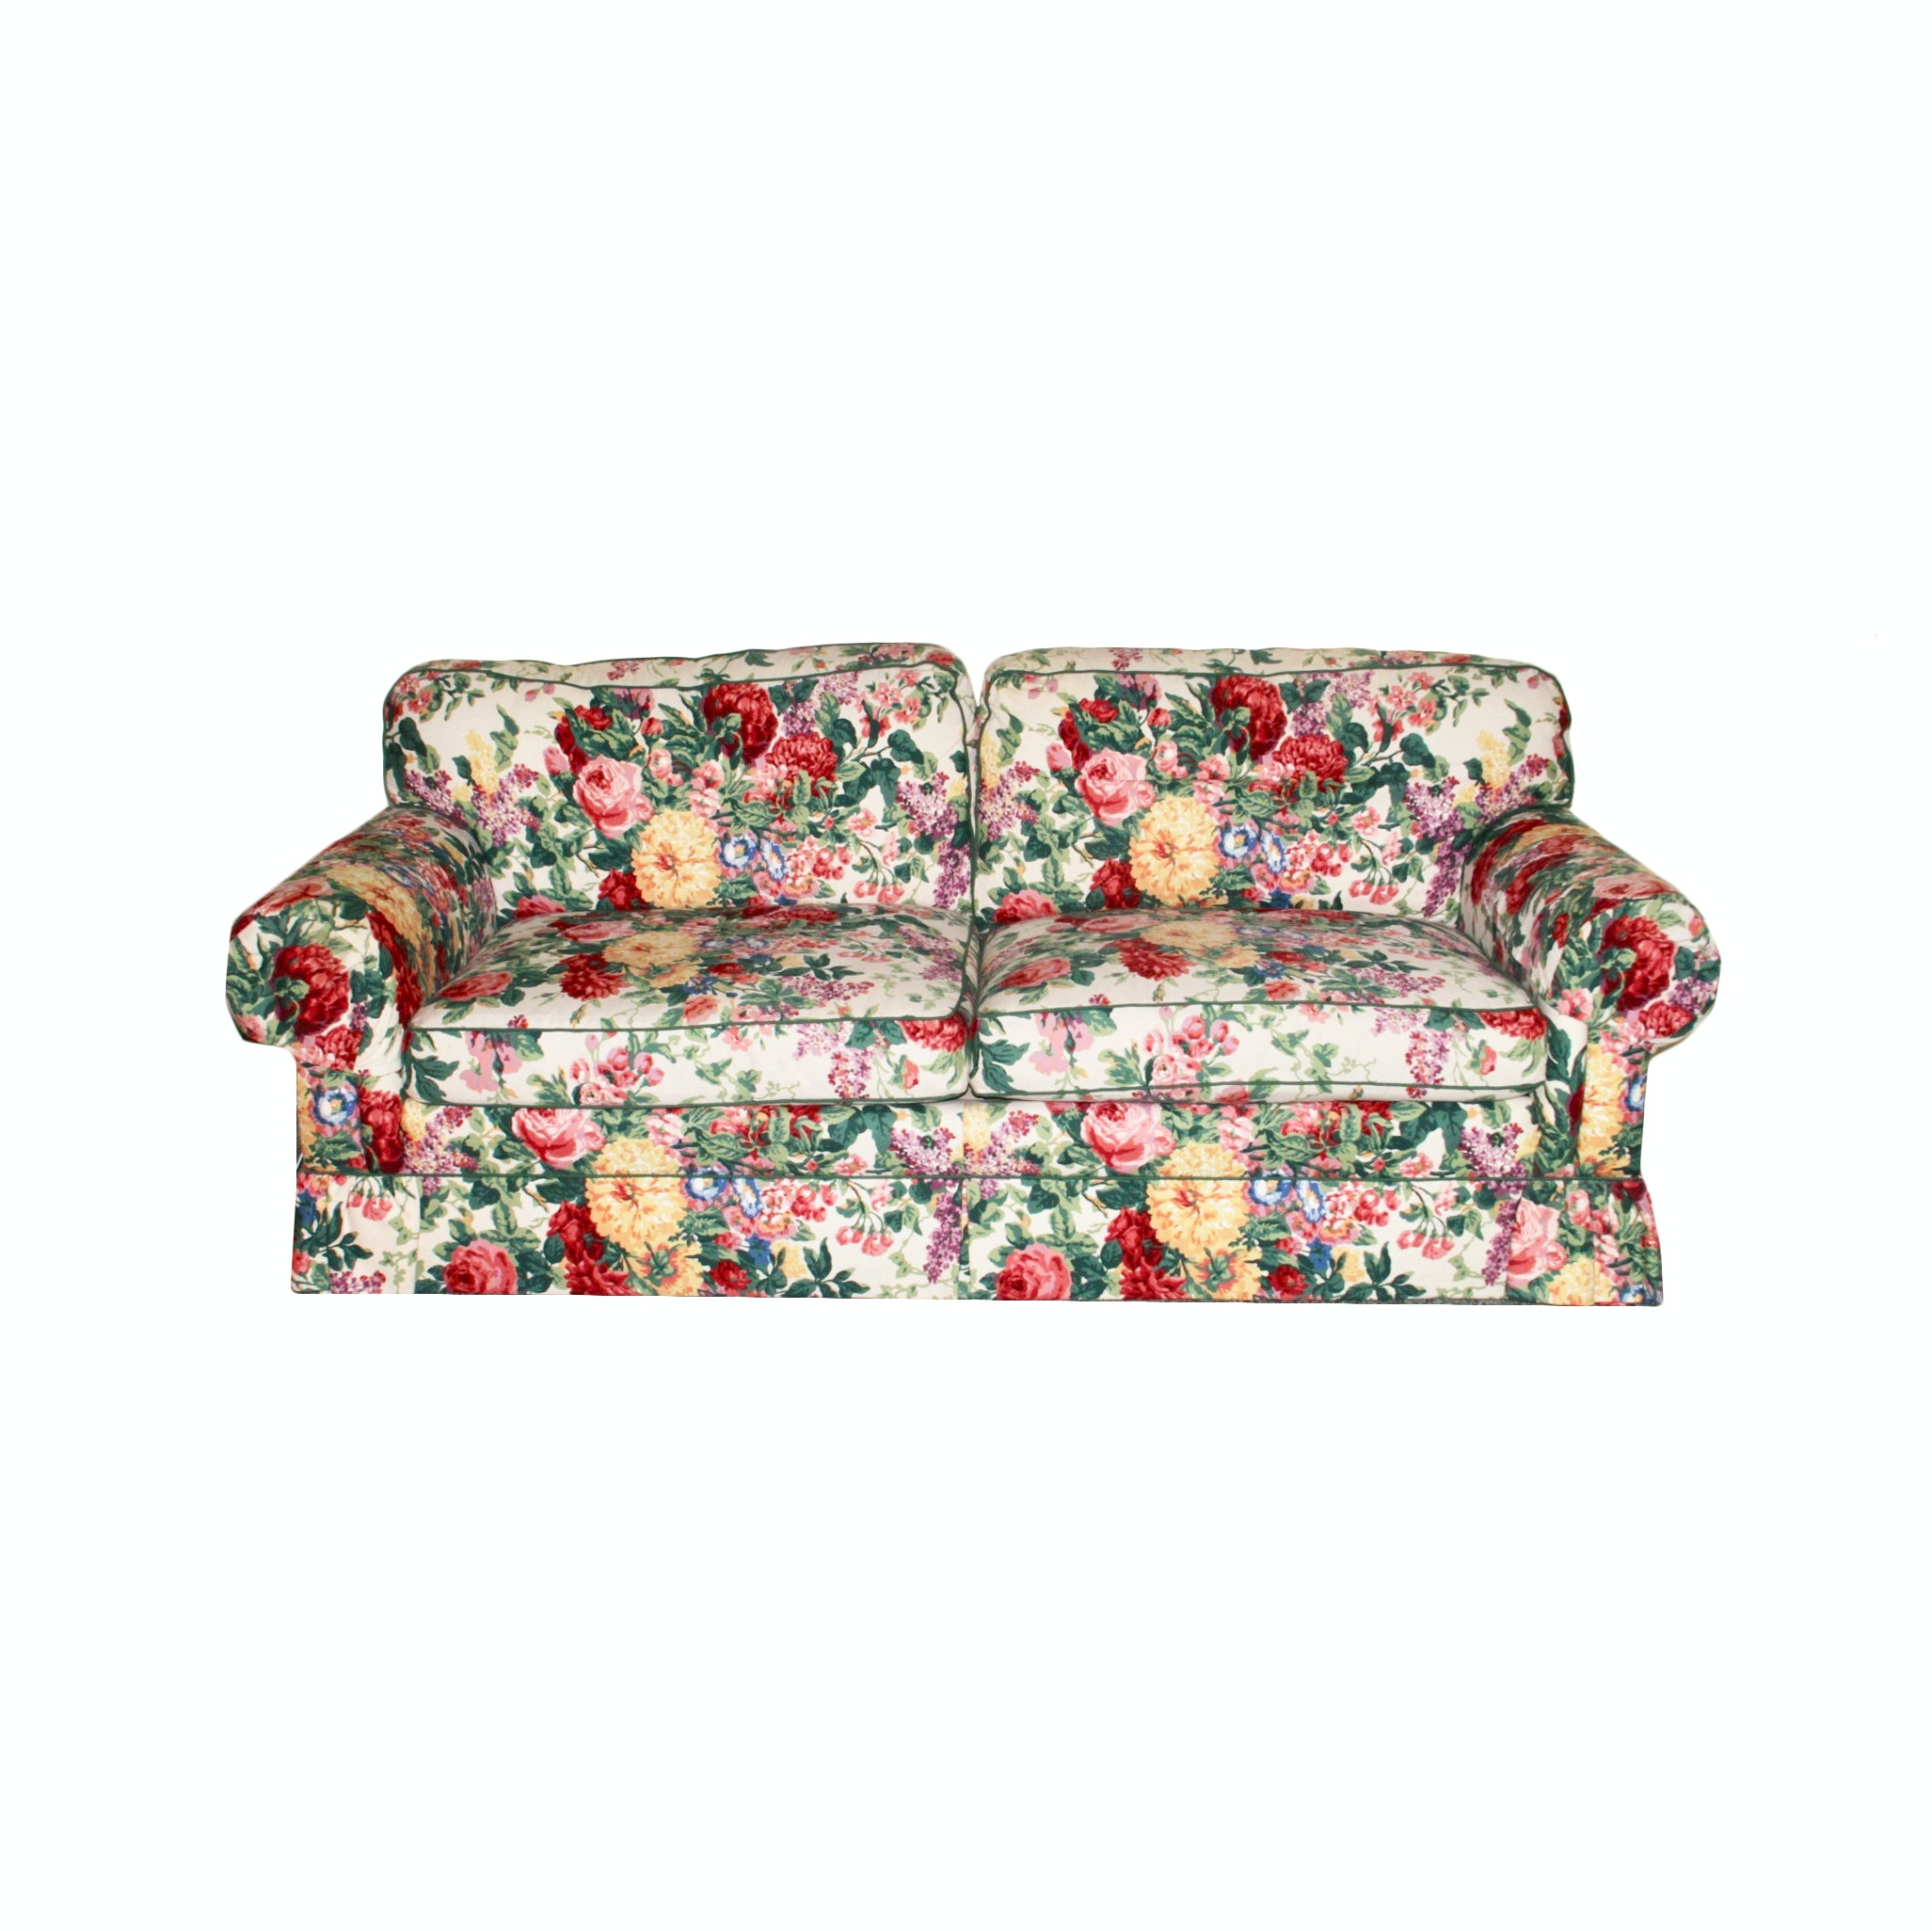 Thomasville Floral Upholstered Sofa